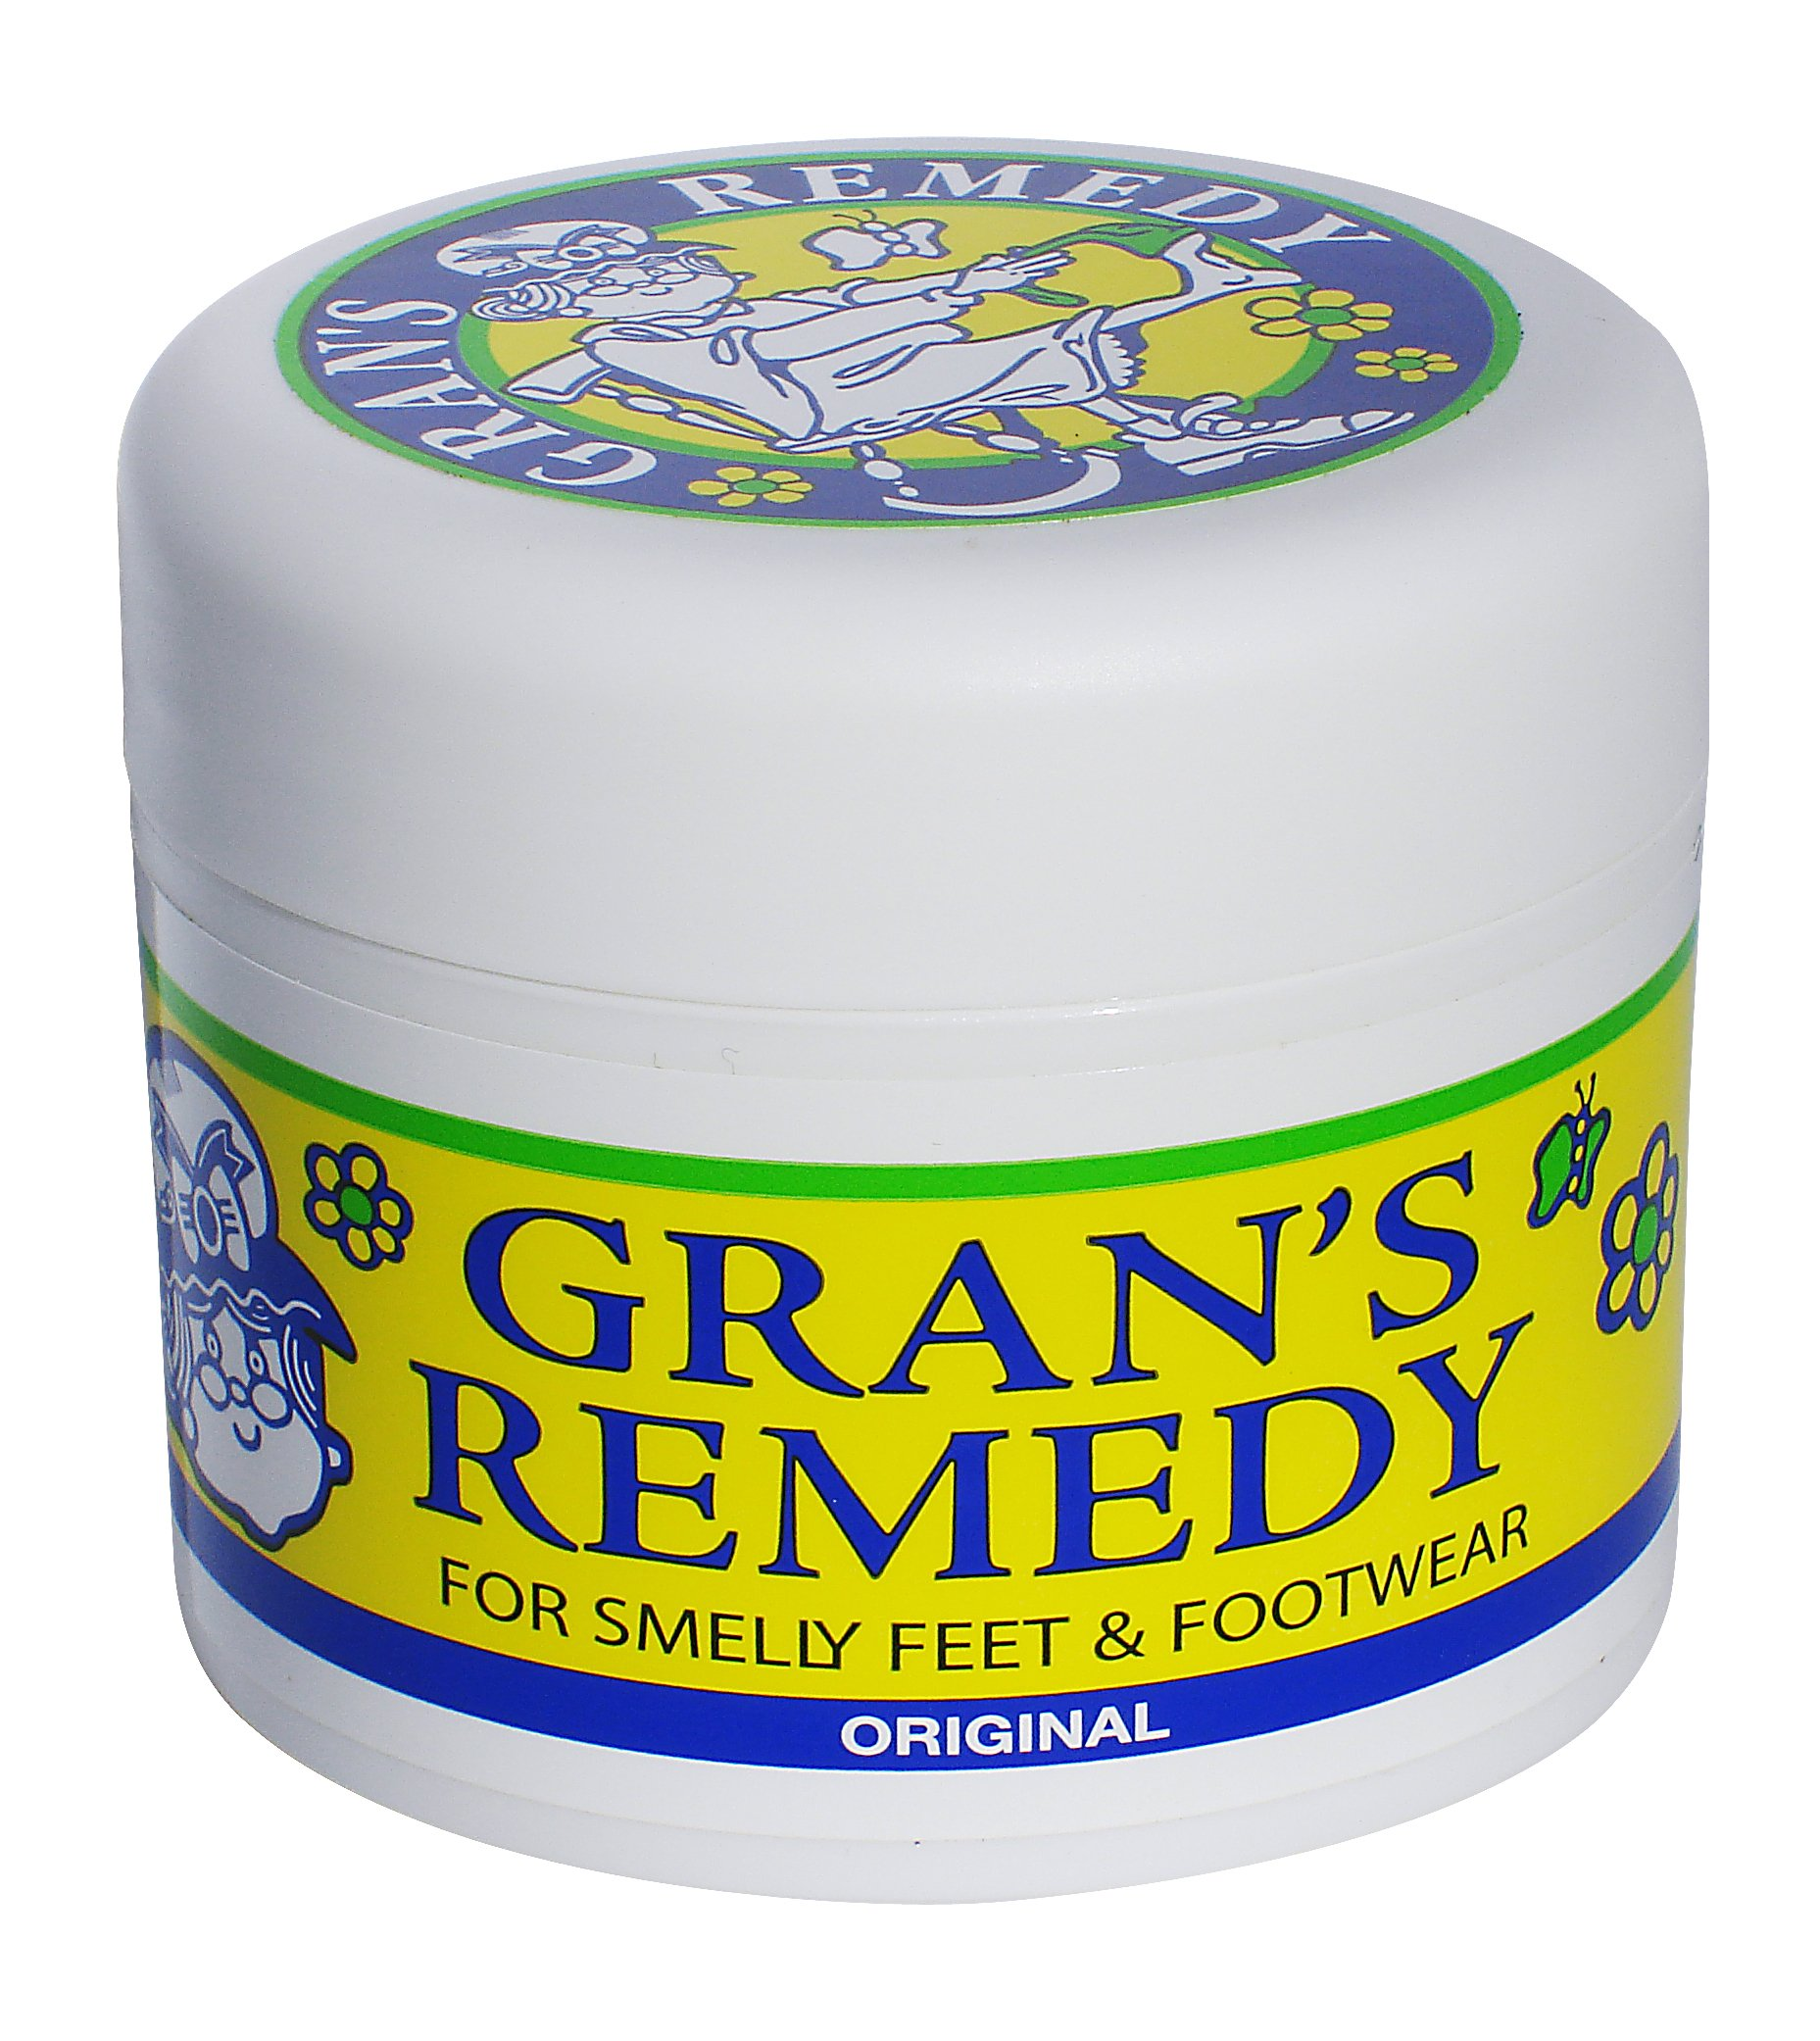 Gran's Remedy Shoe Deodorizer Powder and Foot Odor Eliminator Original (Original) by Gran's Remedy